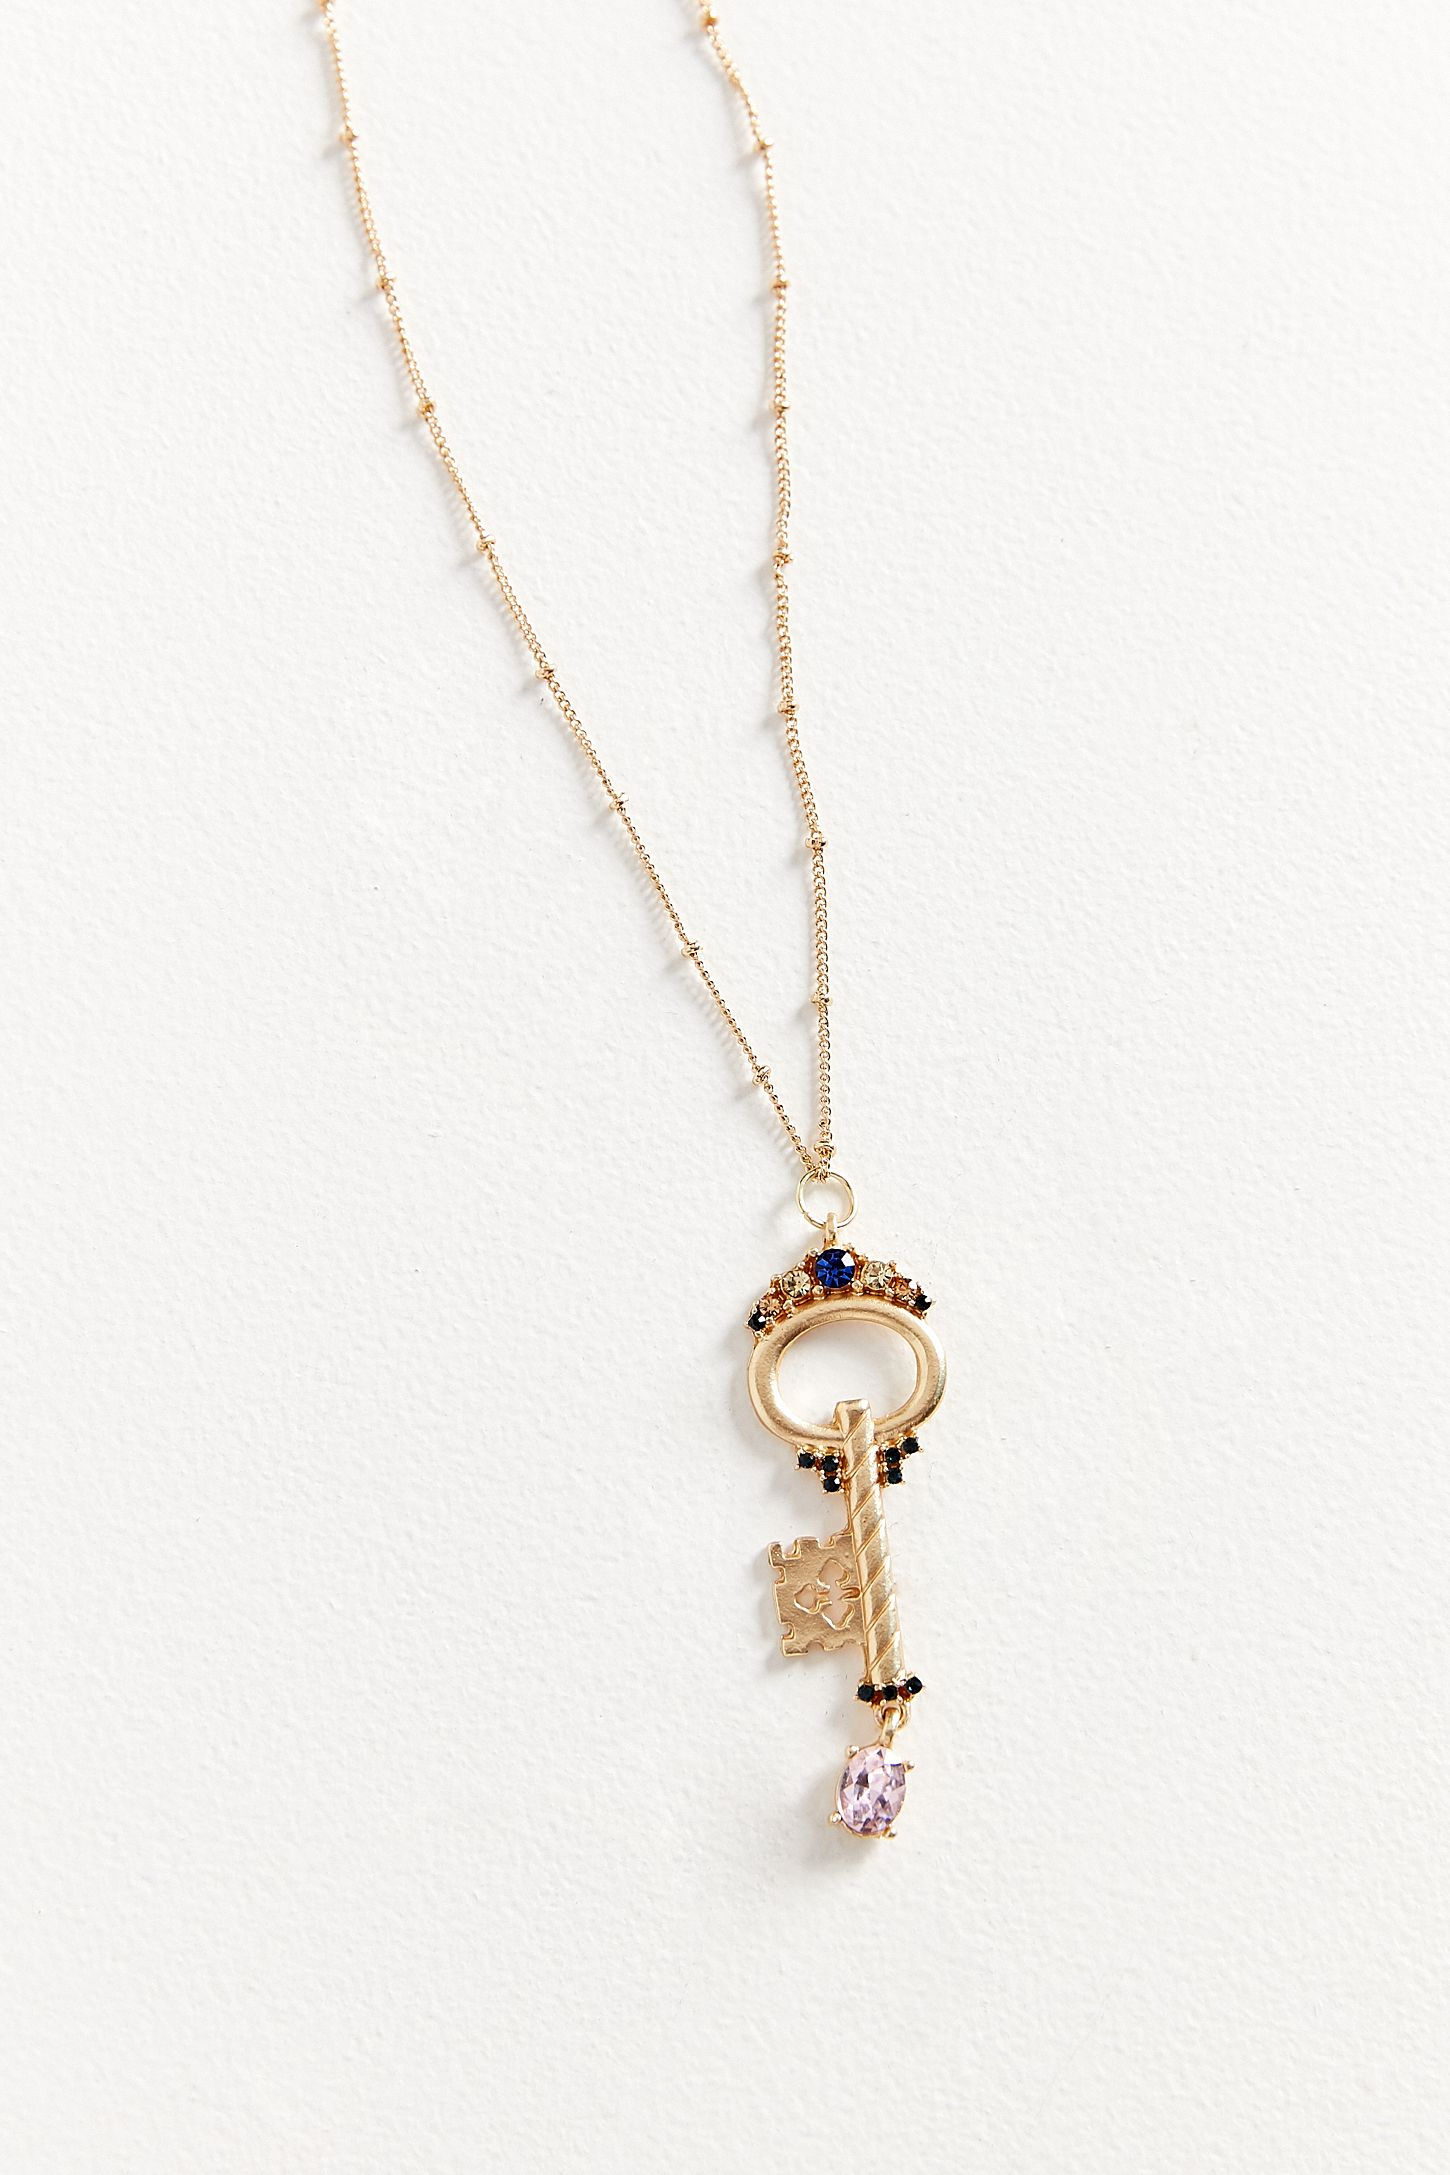 ZHUU Key Pendant Necklace | Urban Outfitters